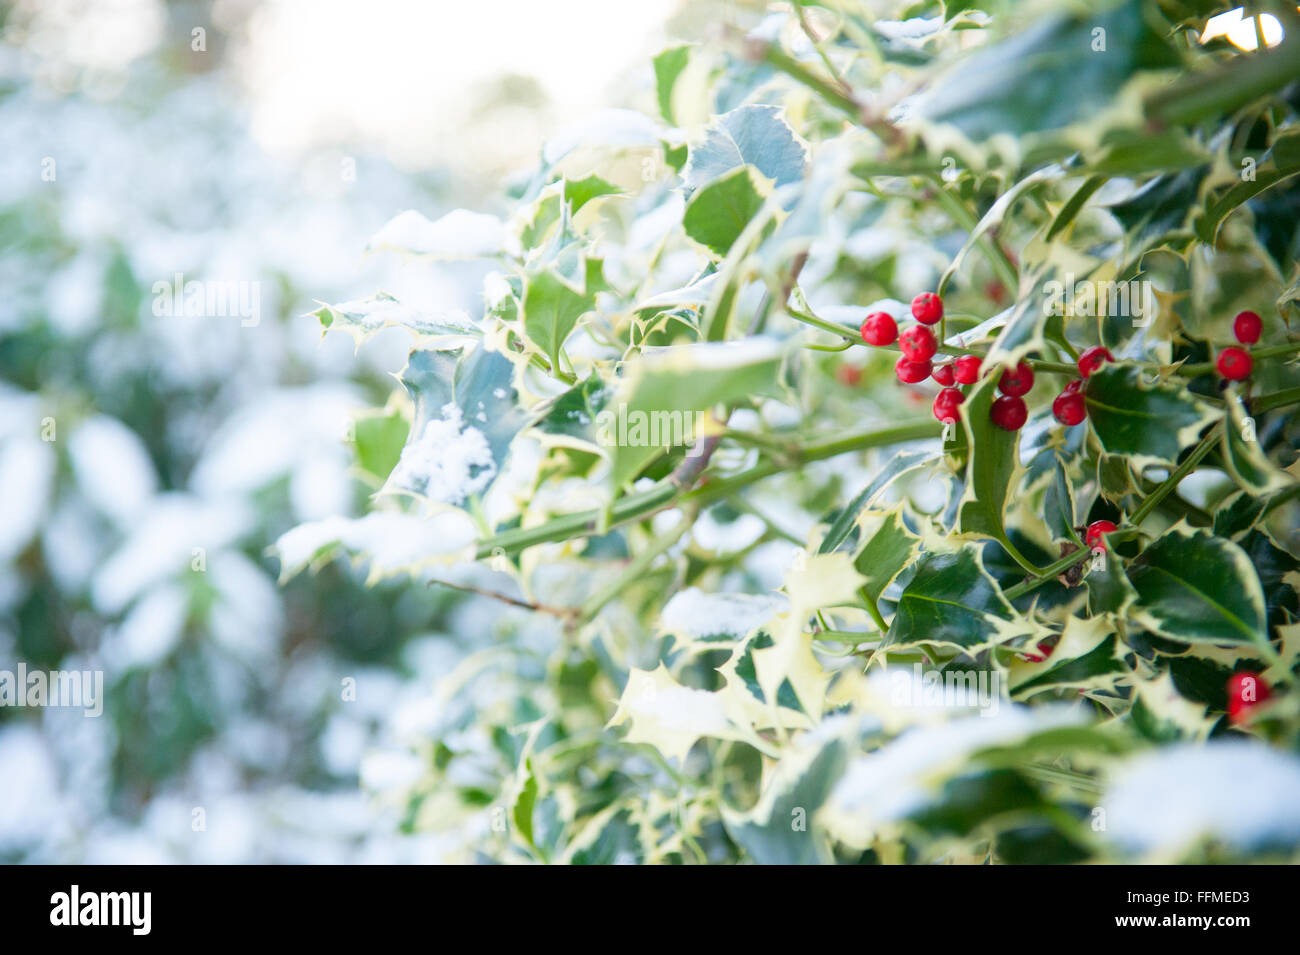 Snow on a holly bush at Drum Castle in Aberdeenshire, Scotland. - Stock Image